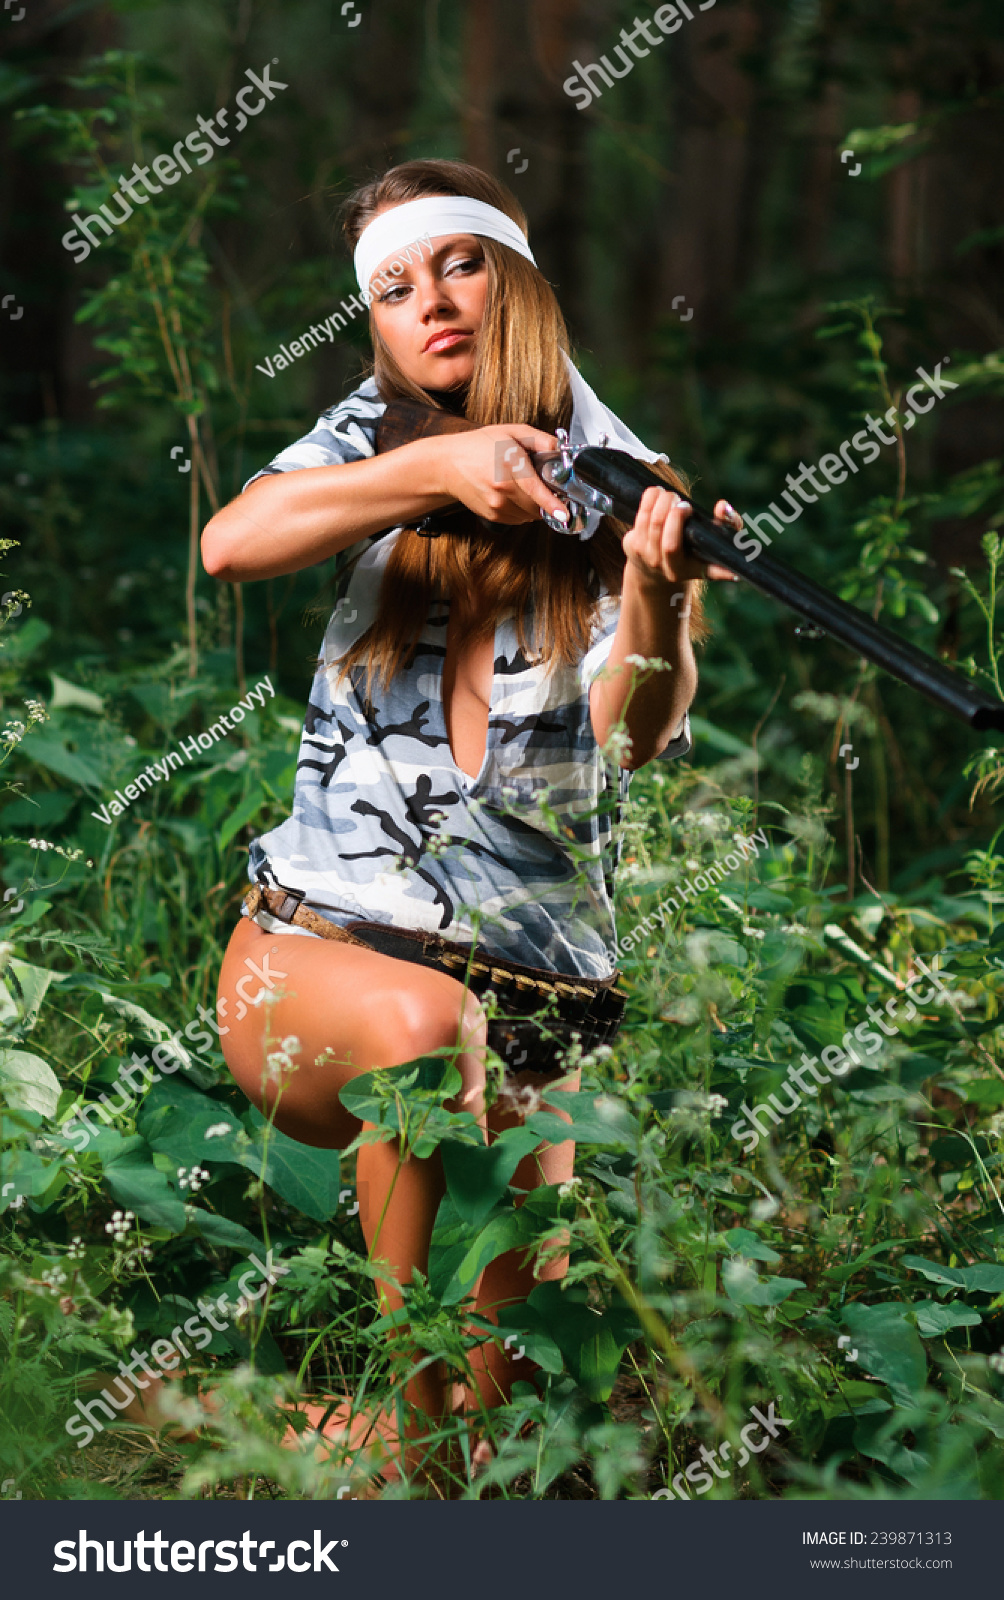 sexy huntress pictures